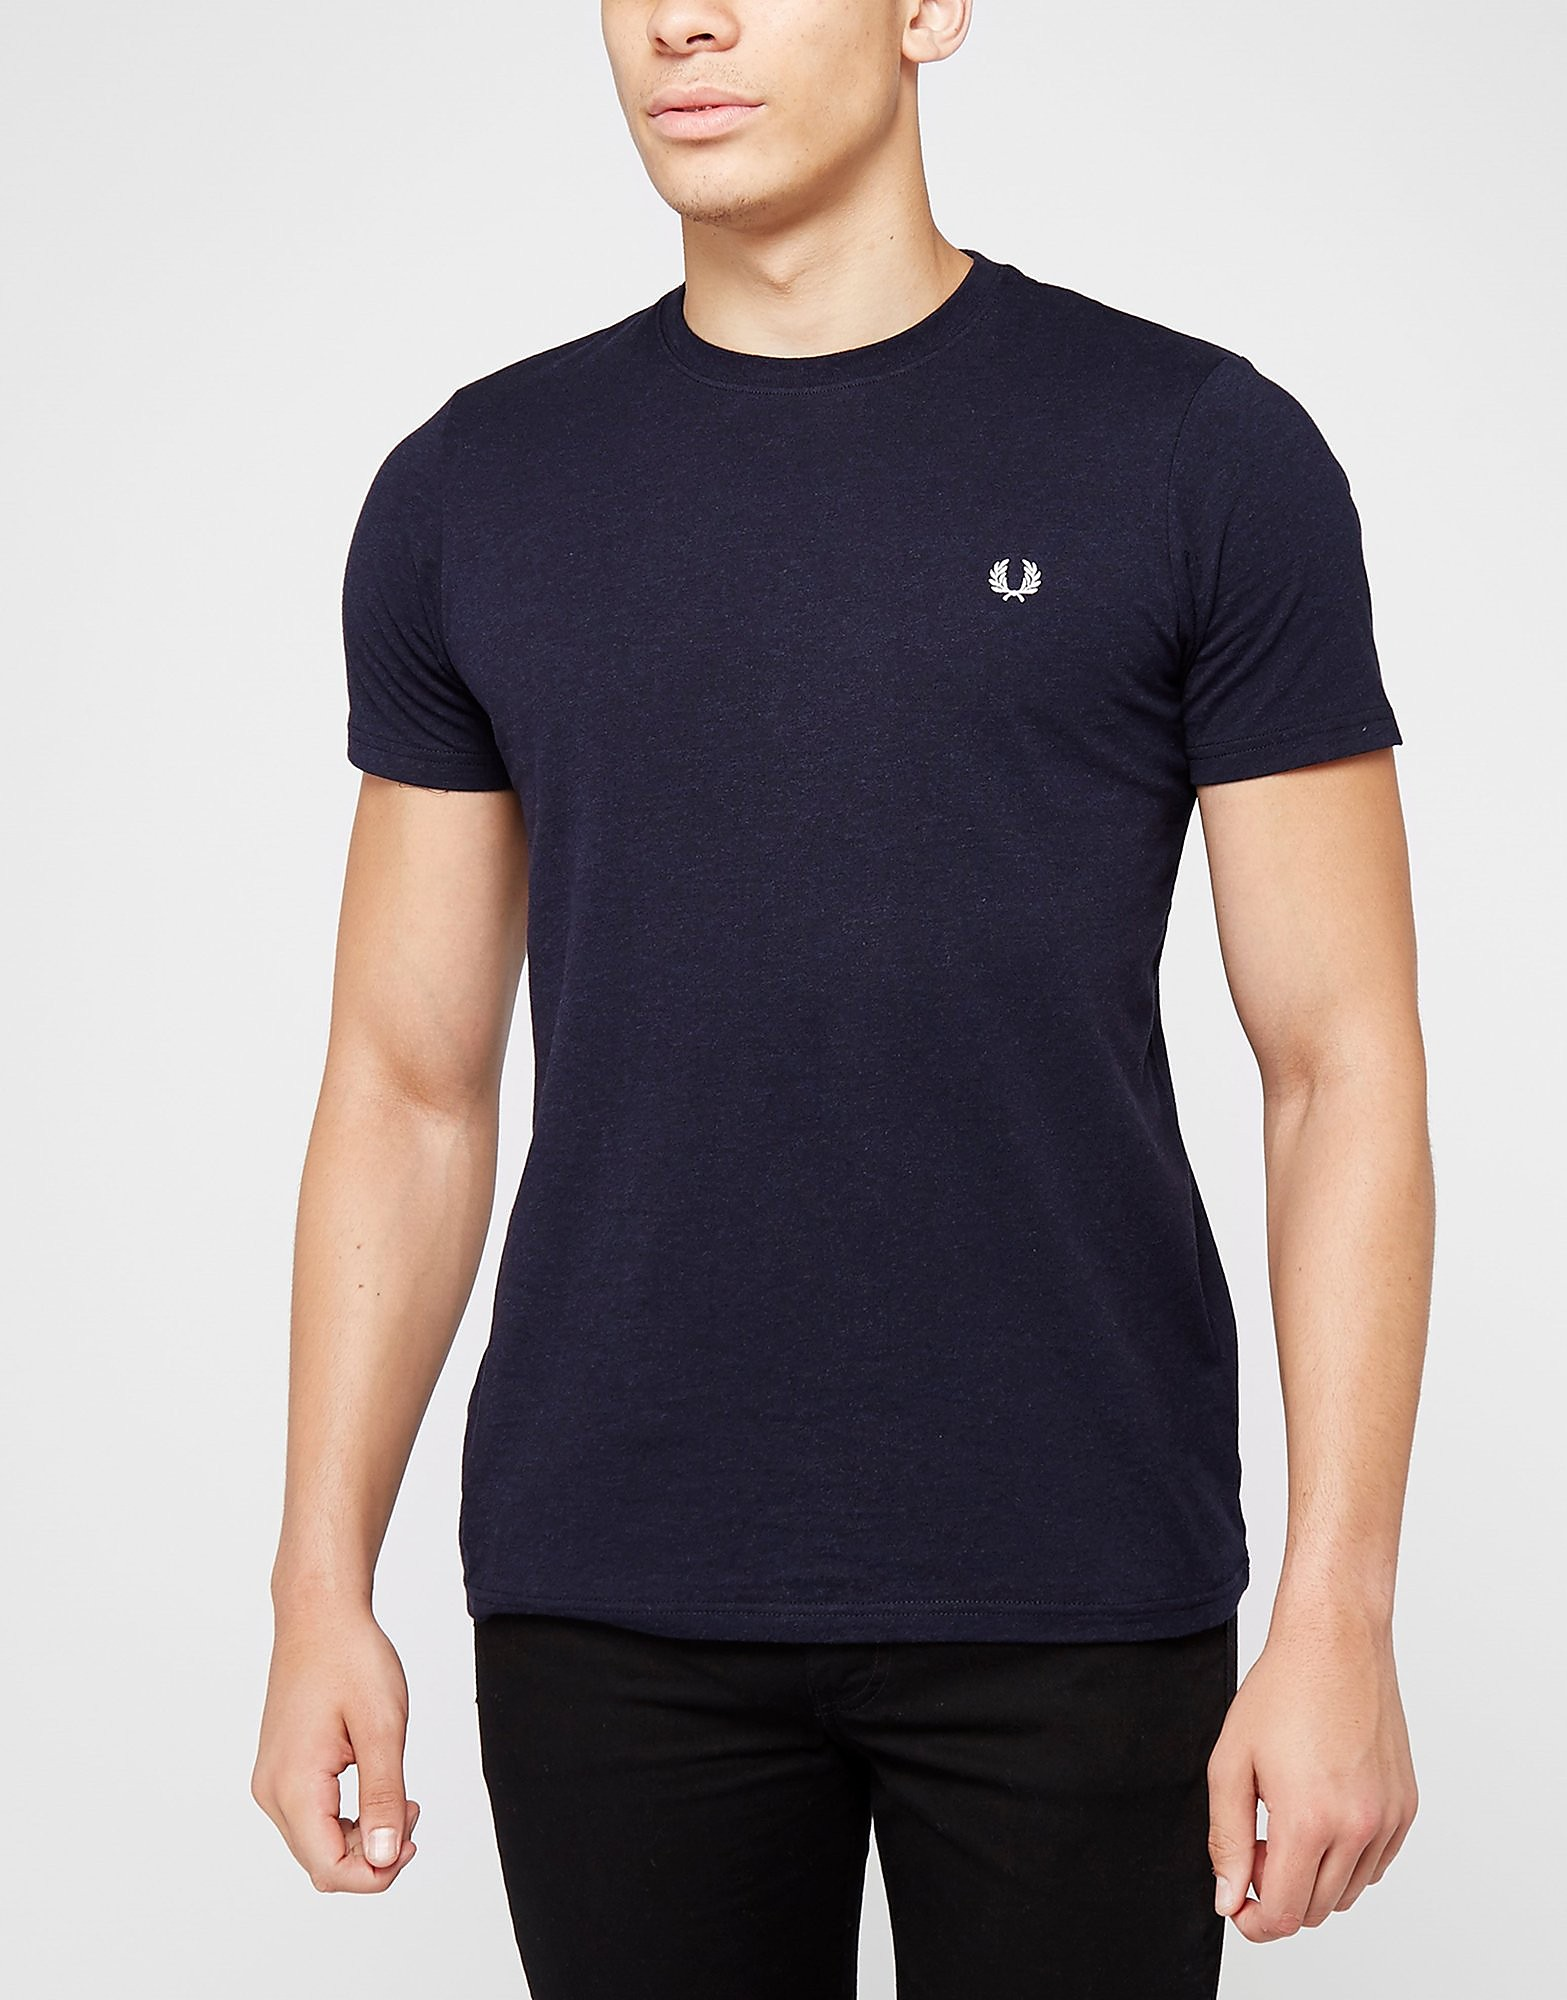 Fred Perry Navy T-Shirt - Exclusive